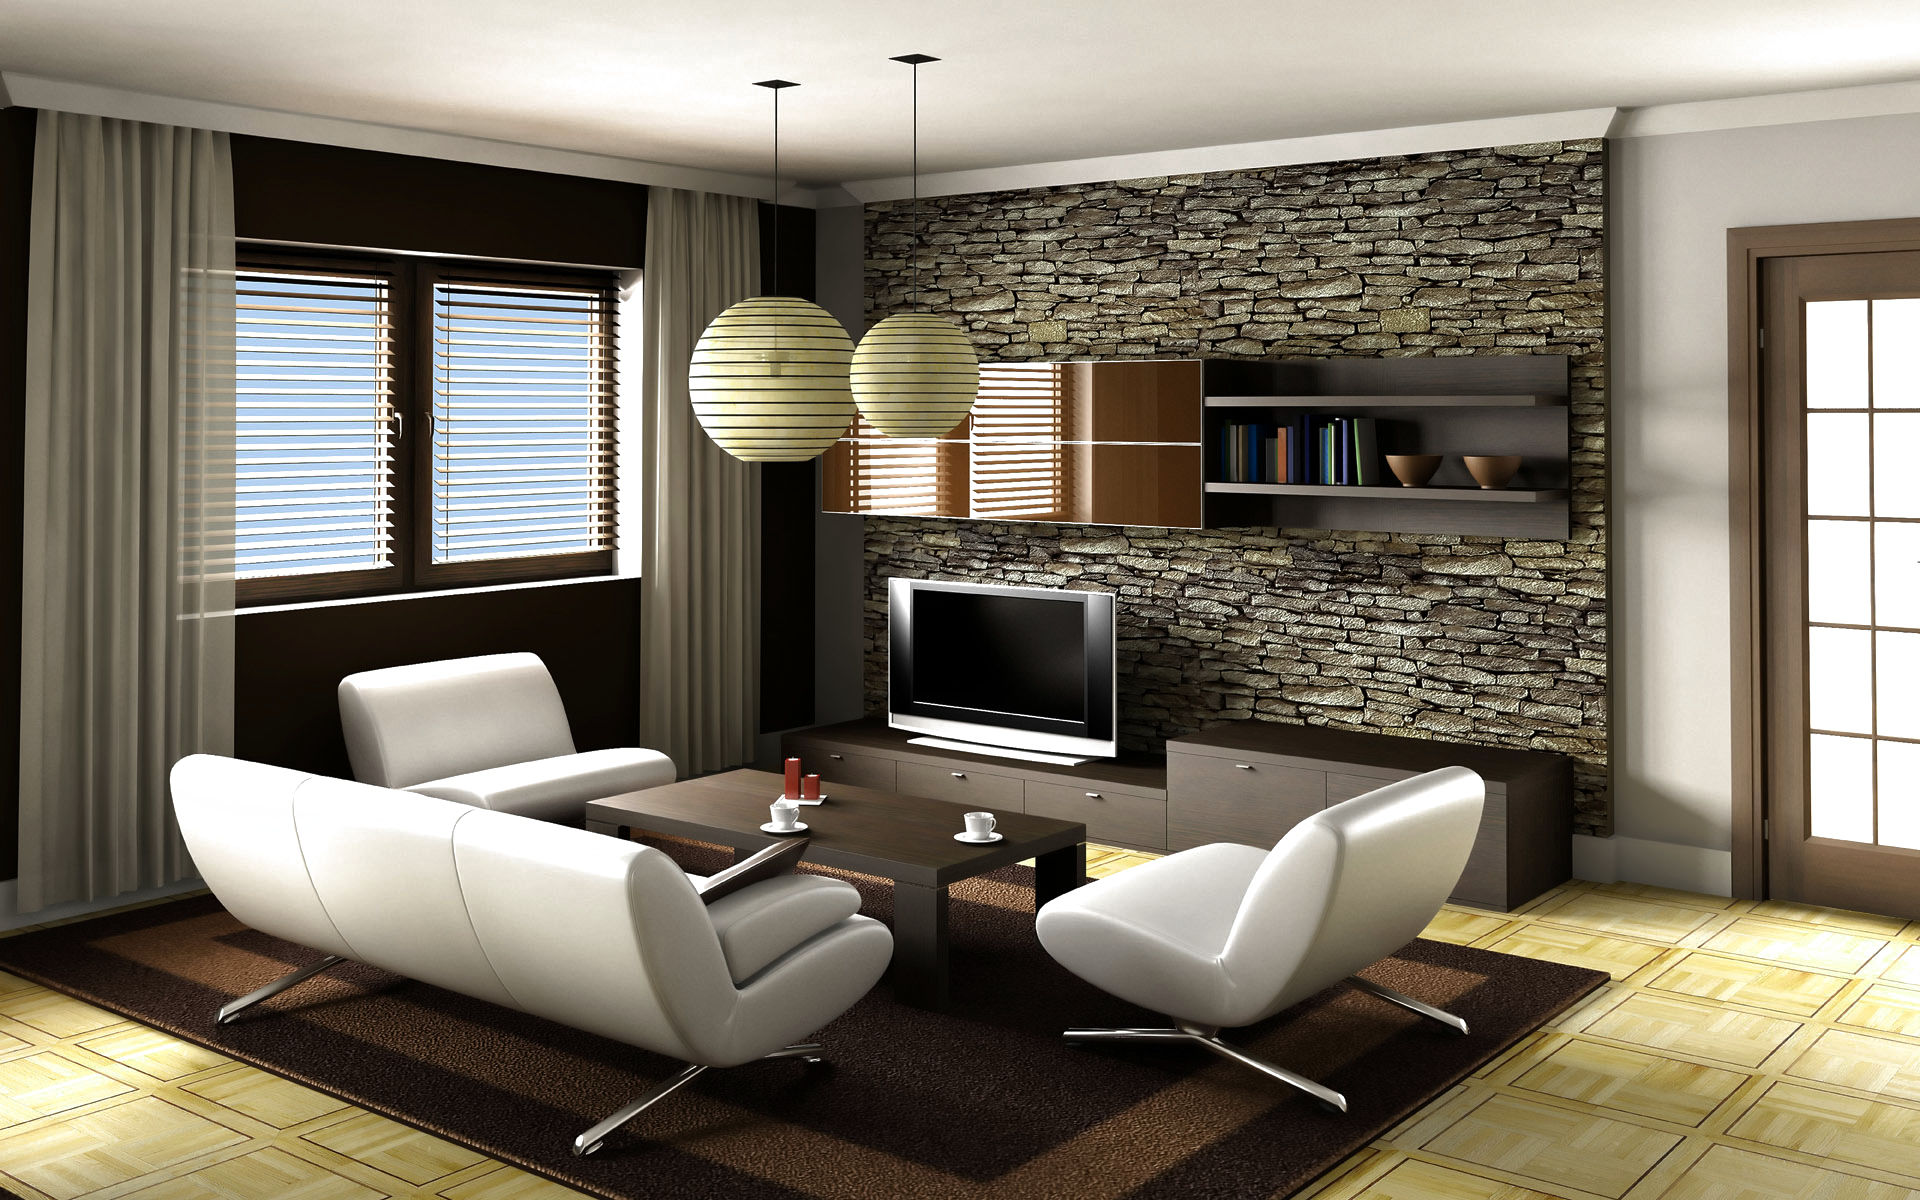 16 modern living room furniture ideas design hgnv com - Furniture living room design ...